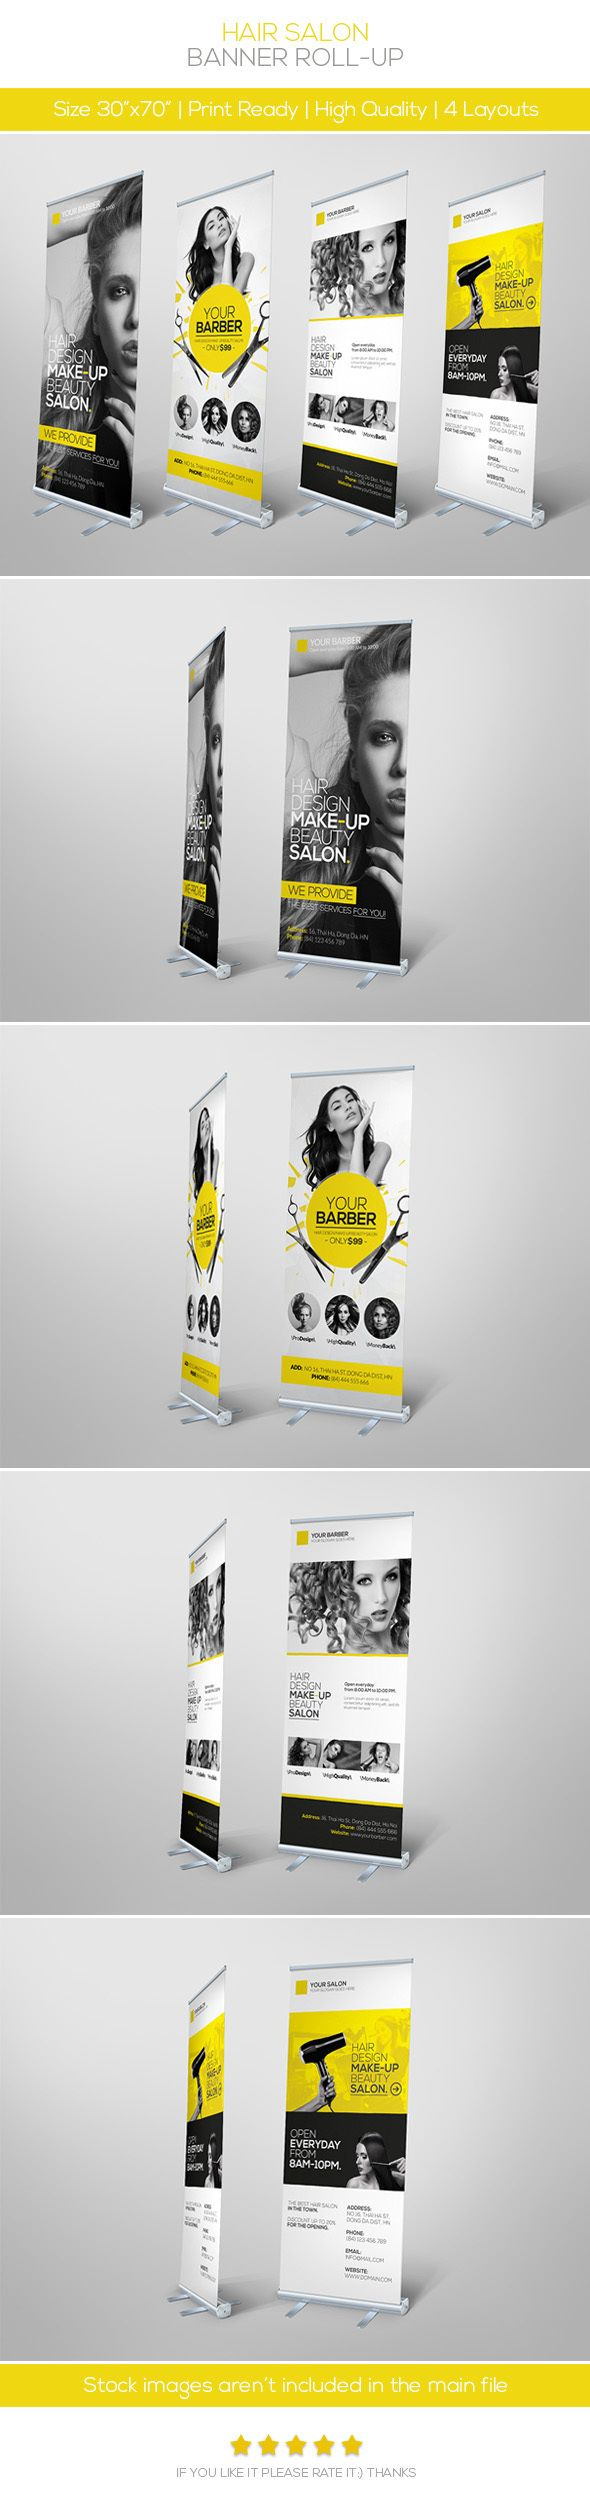 Web banners, banner designs, banner designer  Sandy Rowley favorites.  Beautiful banner design. Call anytime 775 453 6120. www.renowebdesigner.com   Premium Hair Salon Roll-up Banner by Giang Hoàng, via Behance